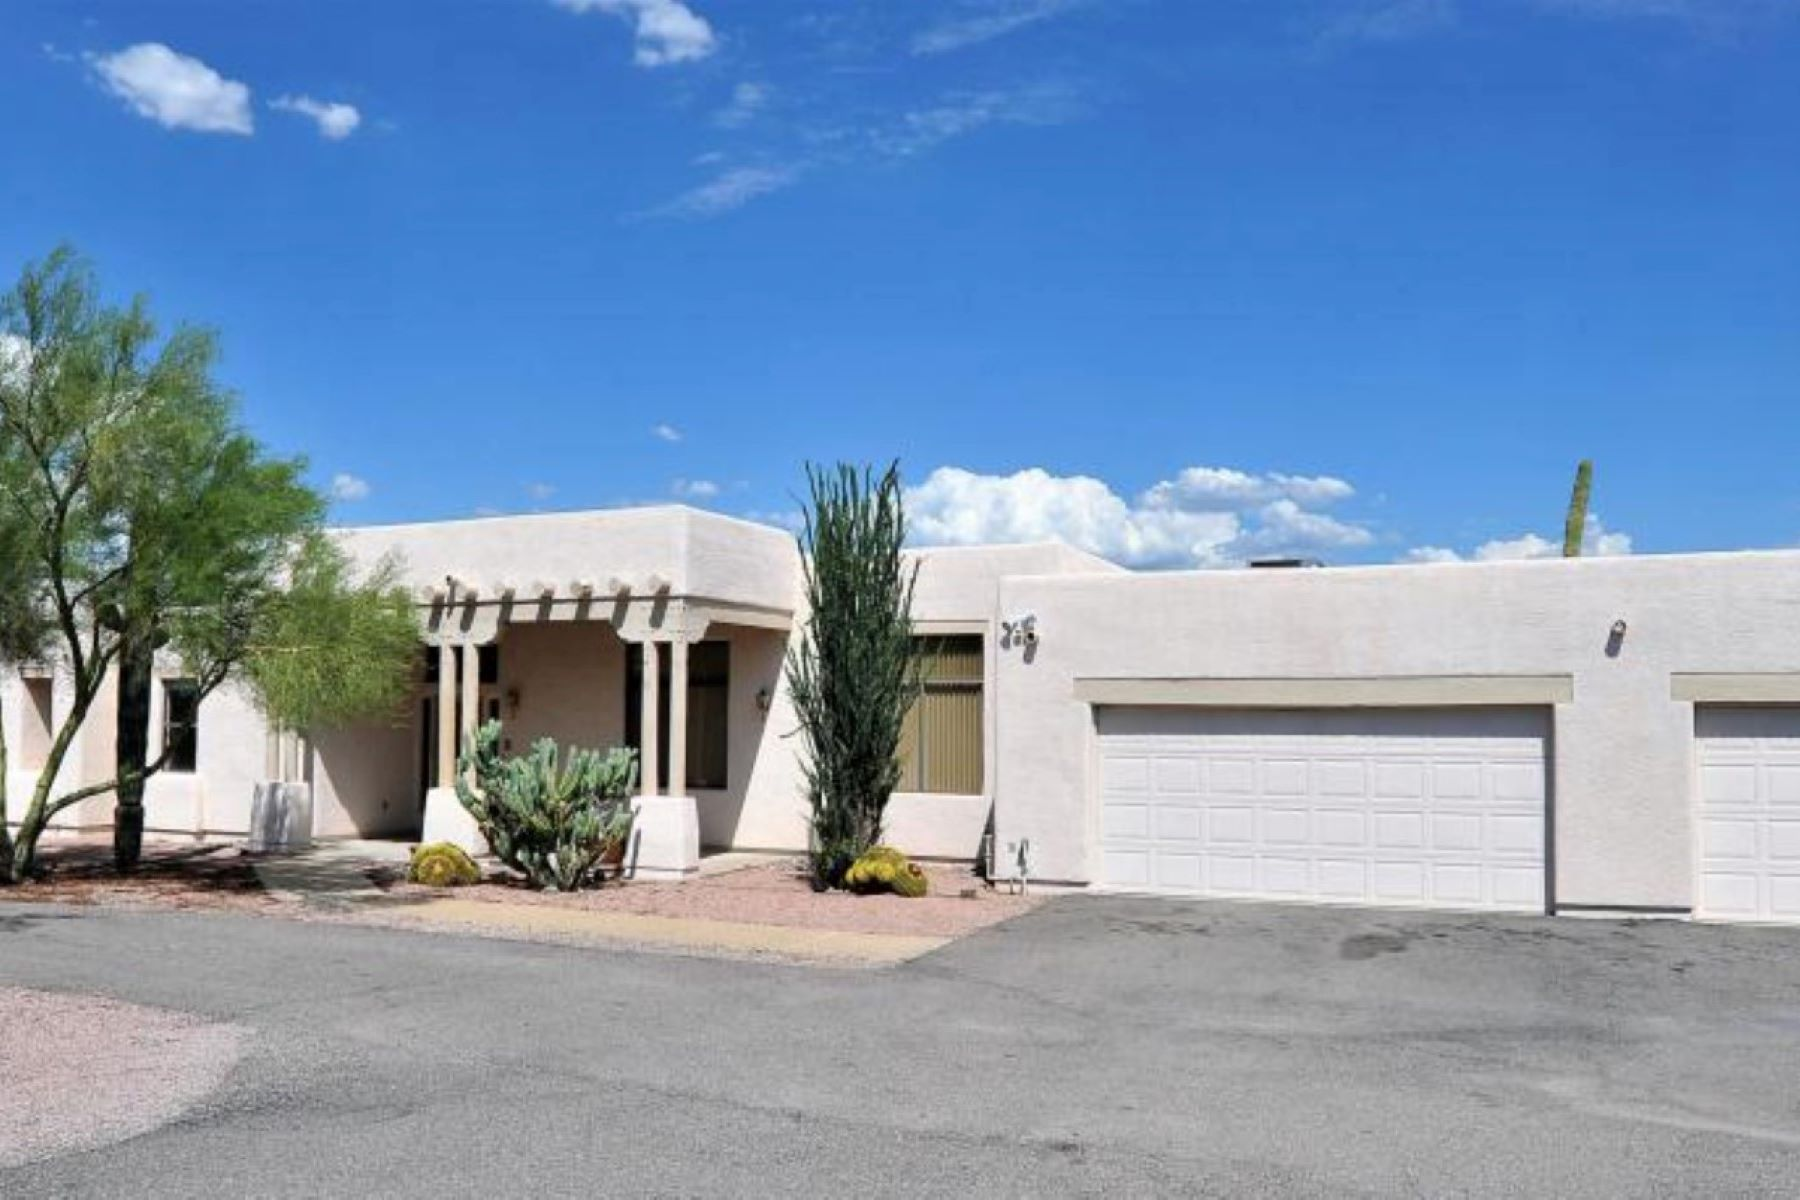 Maison unifamiliale pour l Vente à Great Opportunity in a Community of Only 77 Home with no HOA 7778 N Wade Springs Drive Tucson, Arizona, 85743 États-Unis